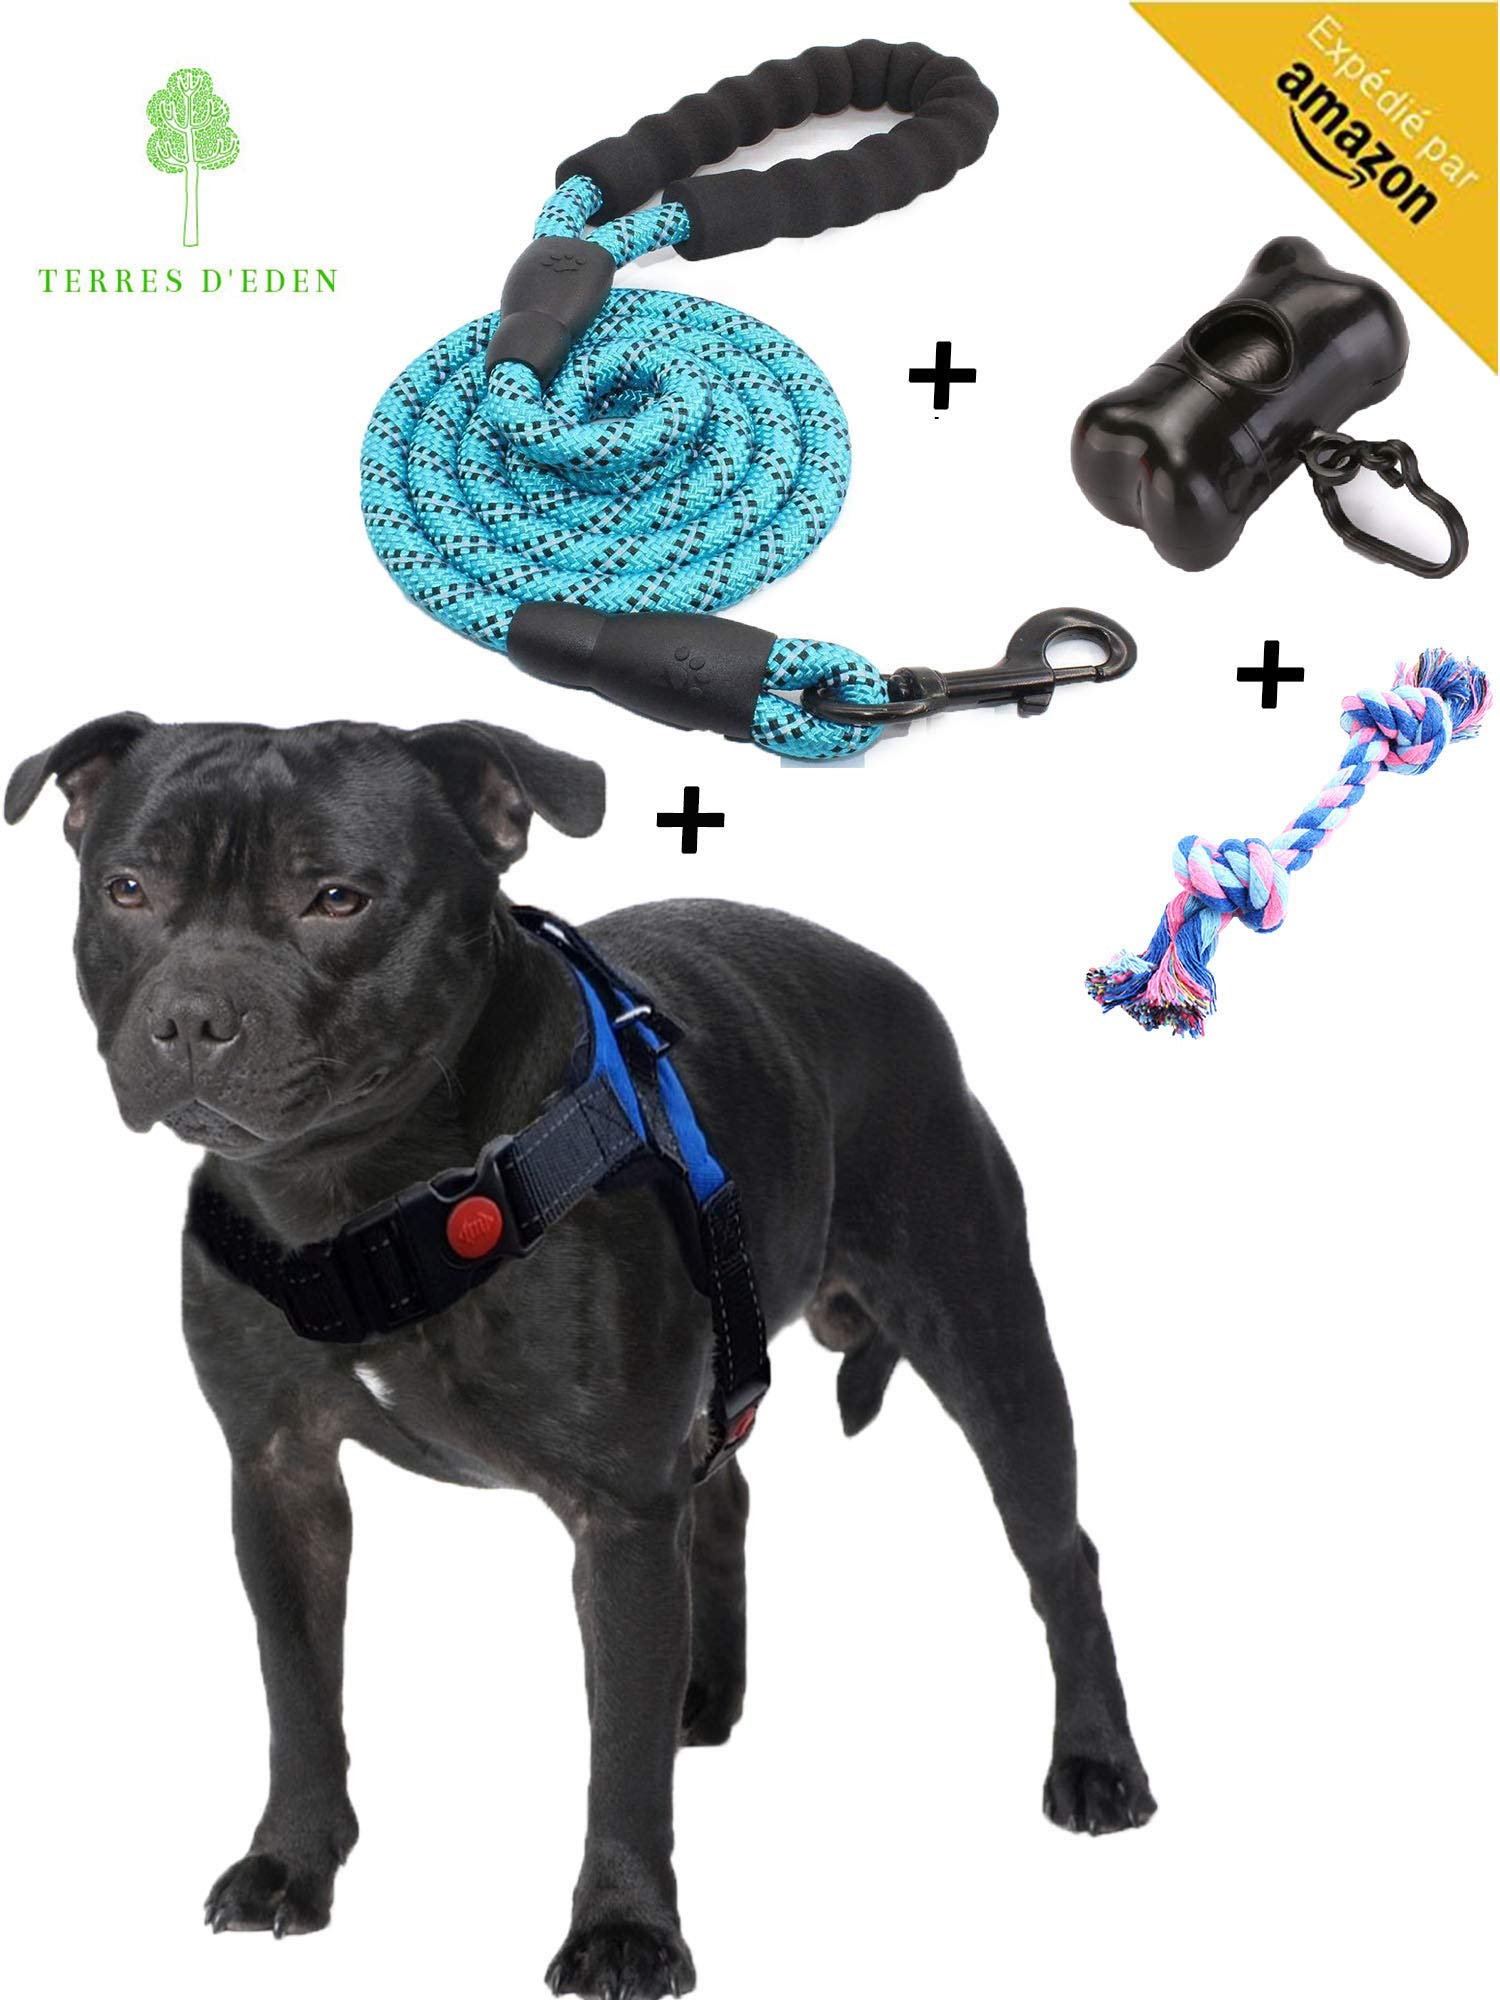 Dog Harness, Medium Dog Harnesses, Dog Harnes, Adjustable And Reflective Strap for Medium Dogs – Perfect for Puppy, Bulldog, Staffy, Beagle, Cocker Spaniel – SIZE M [Satisfied or Reimbursed]